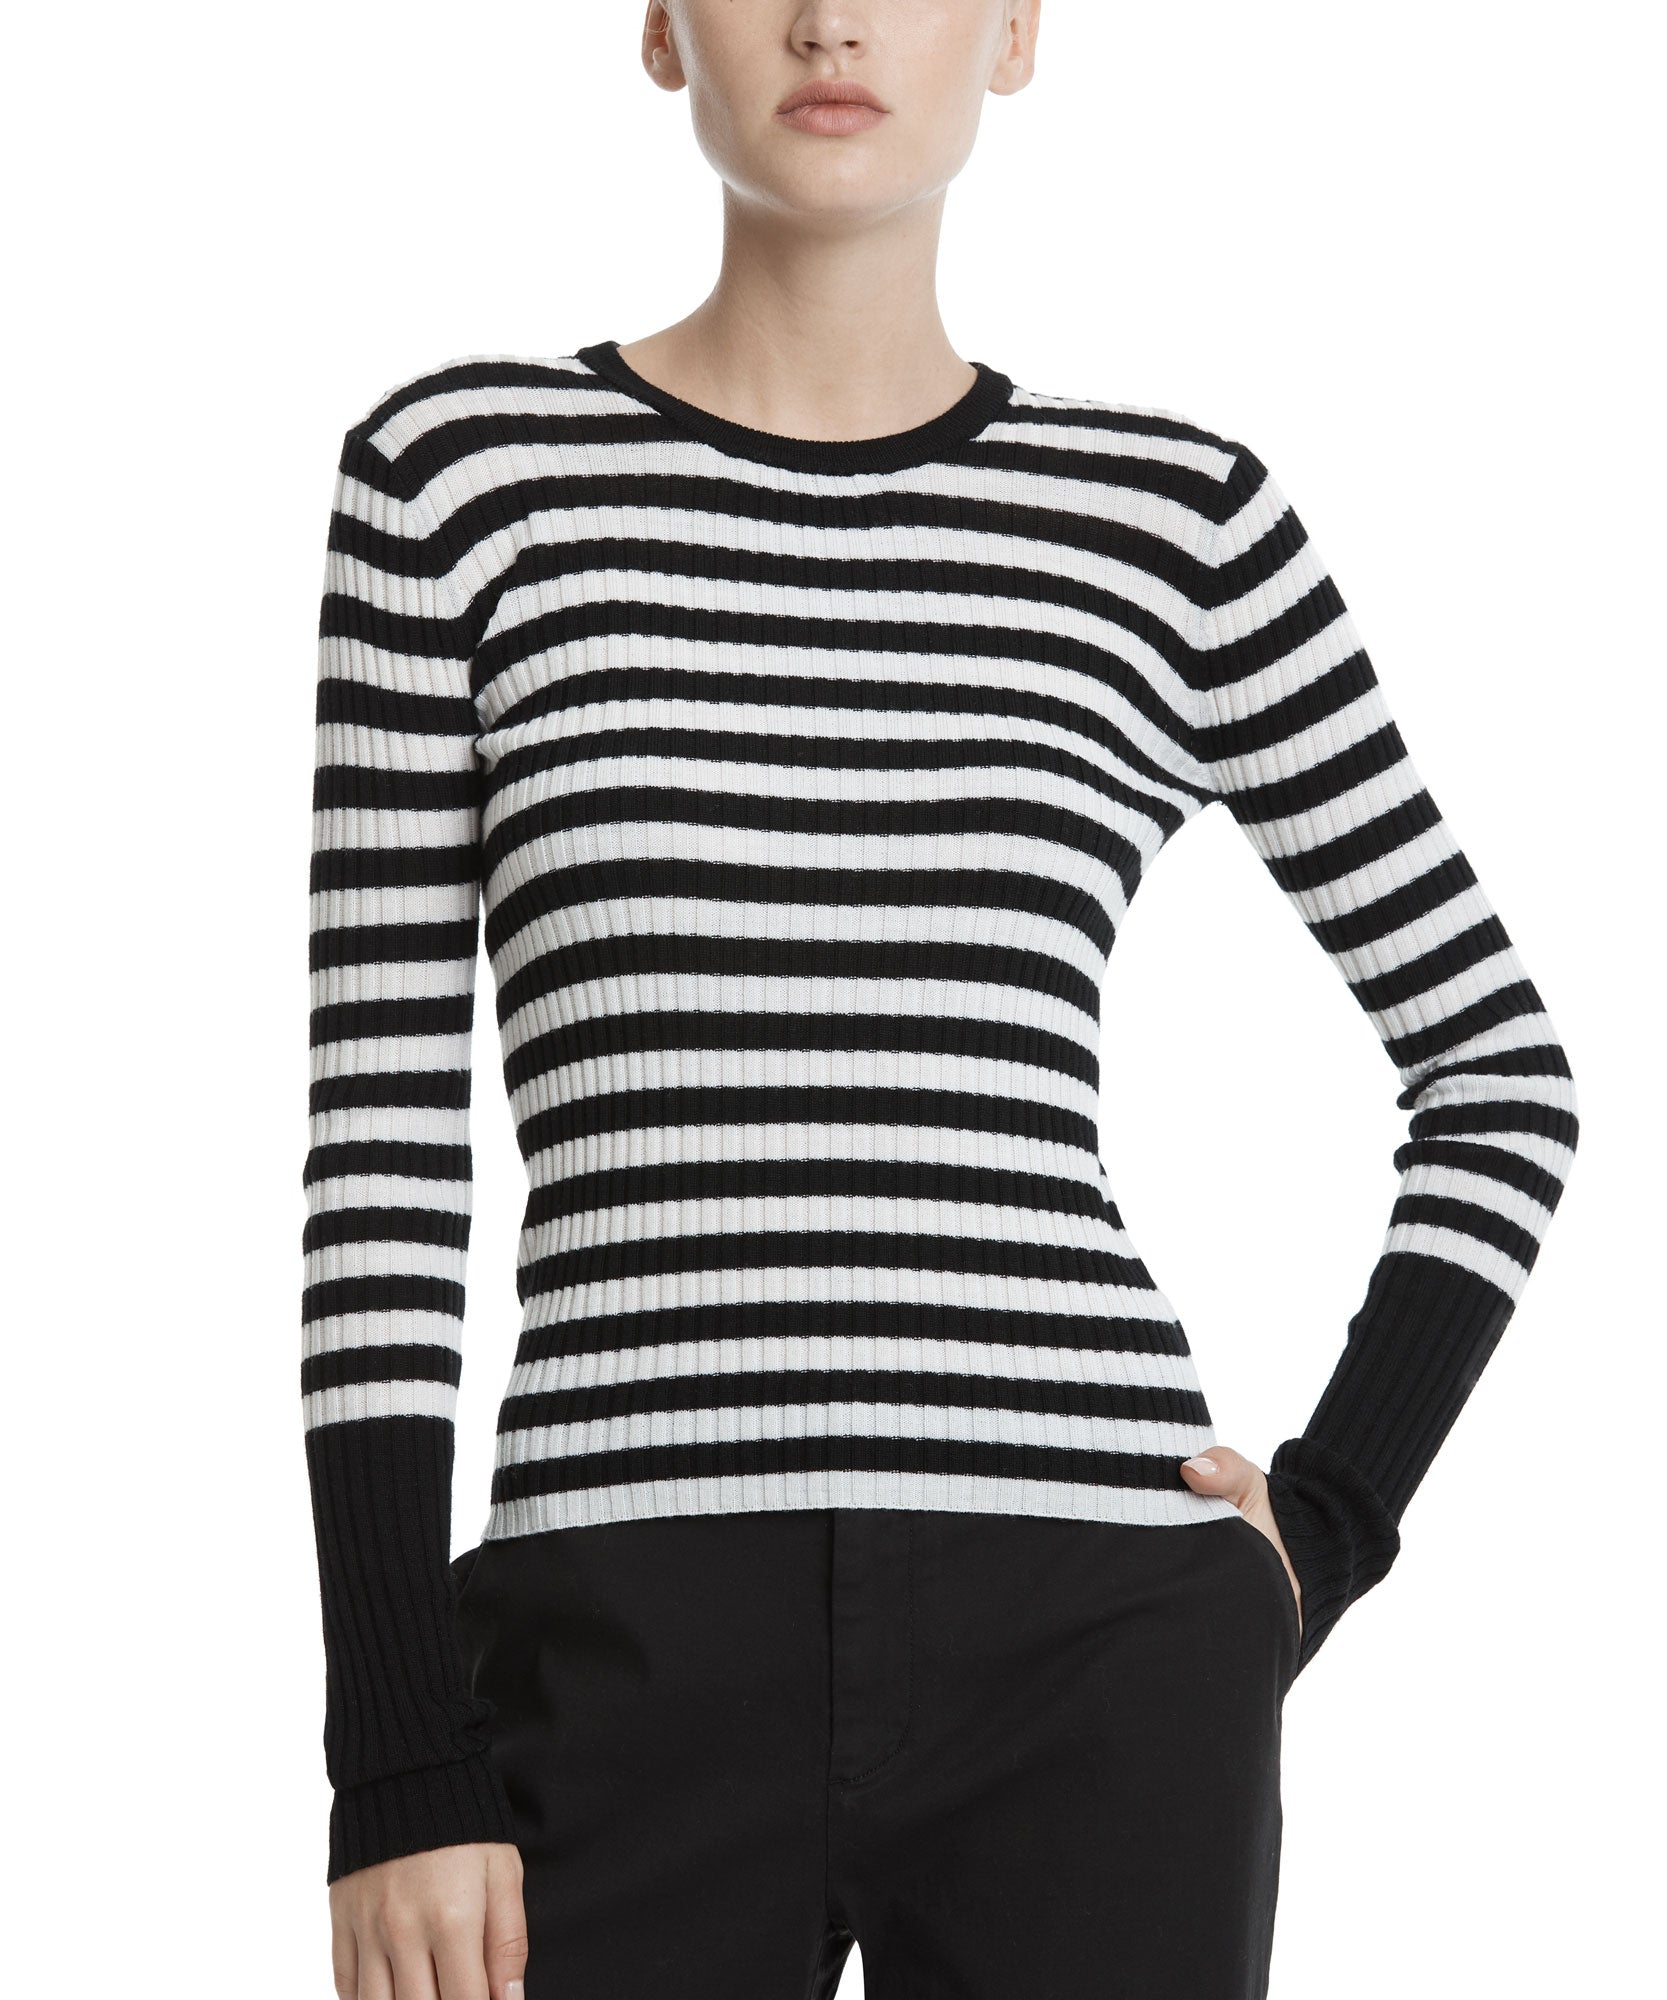 Black and White Wool Striped Rib Crew Neck Sweater - Women's Casual Wool Sweater ATM Anthony Thomas Melillo